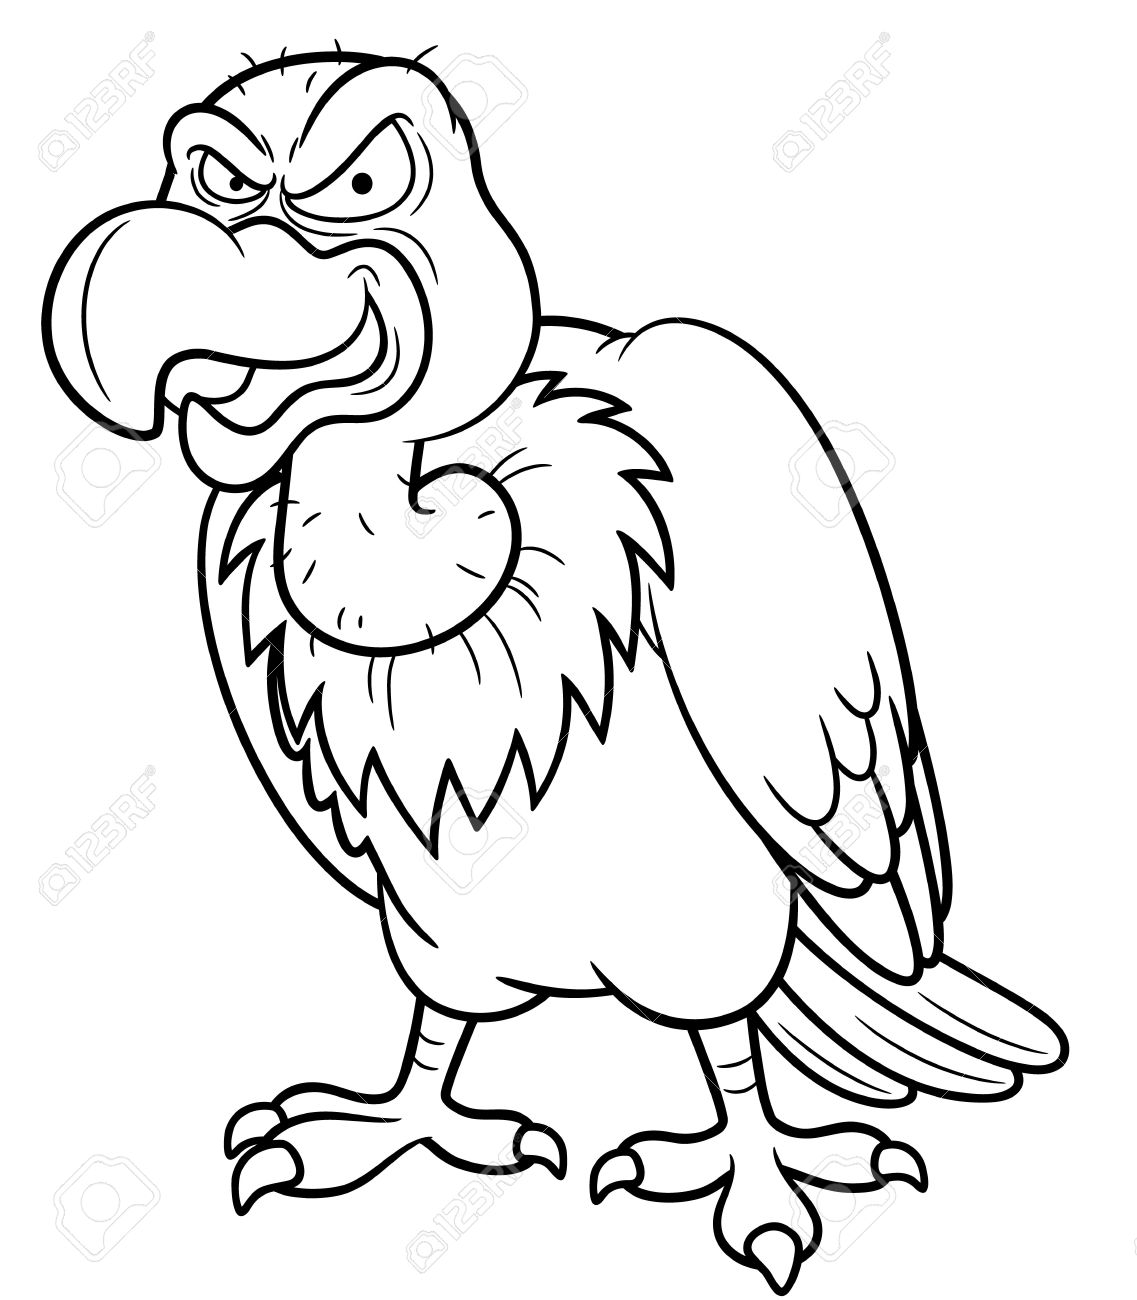 Vulture Coloring Pages